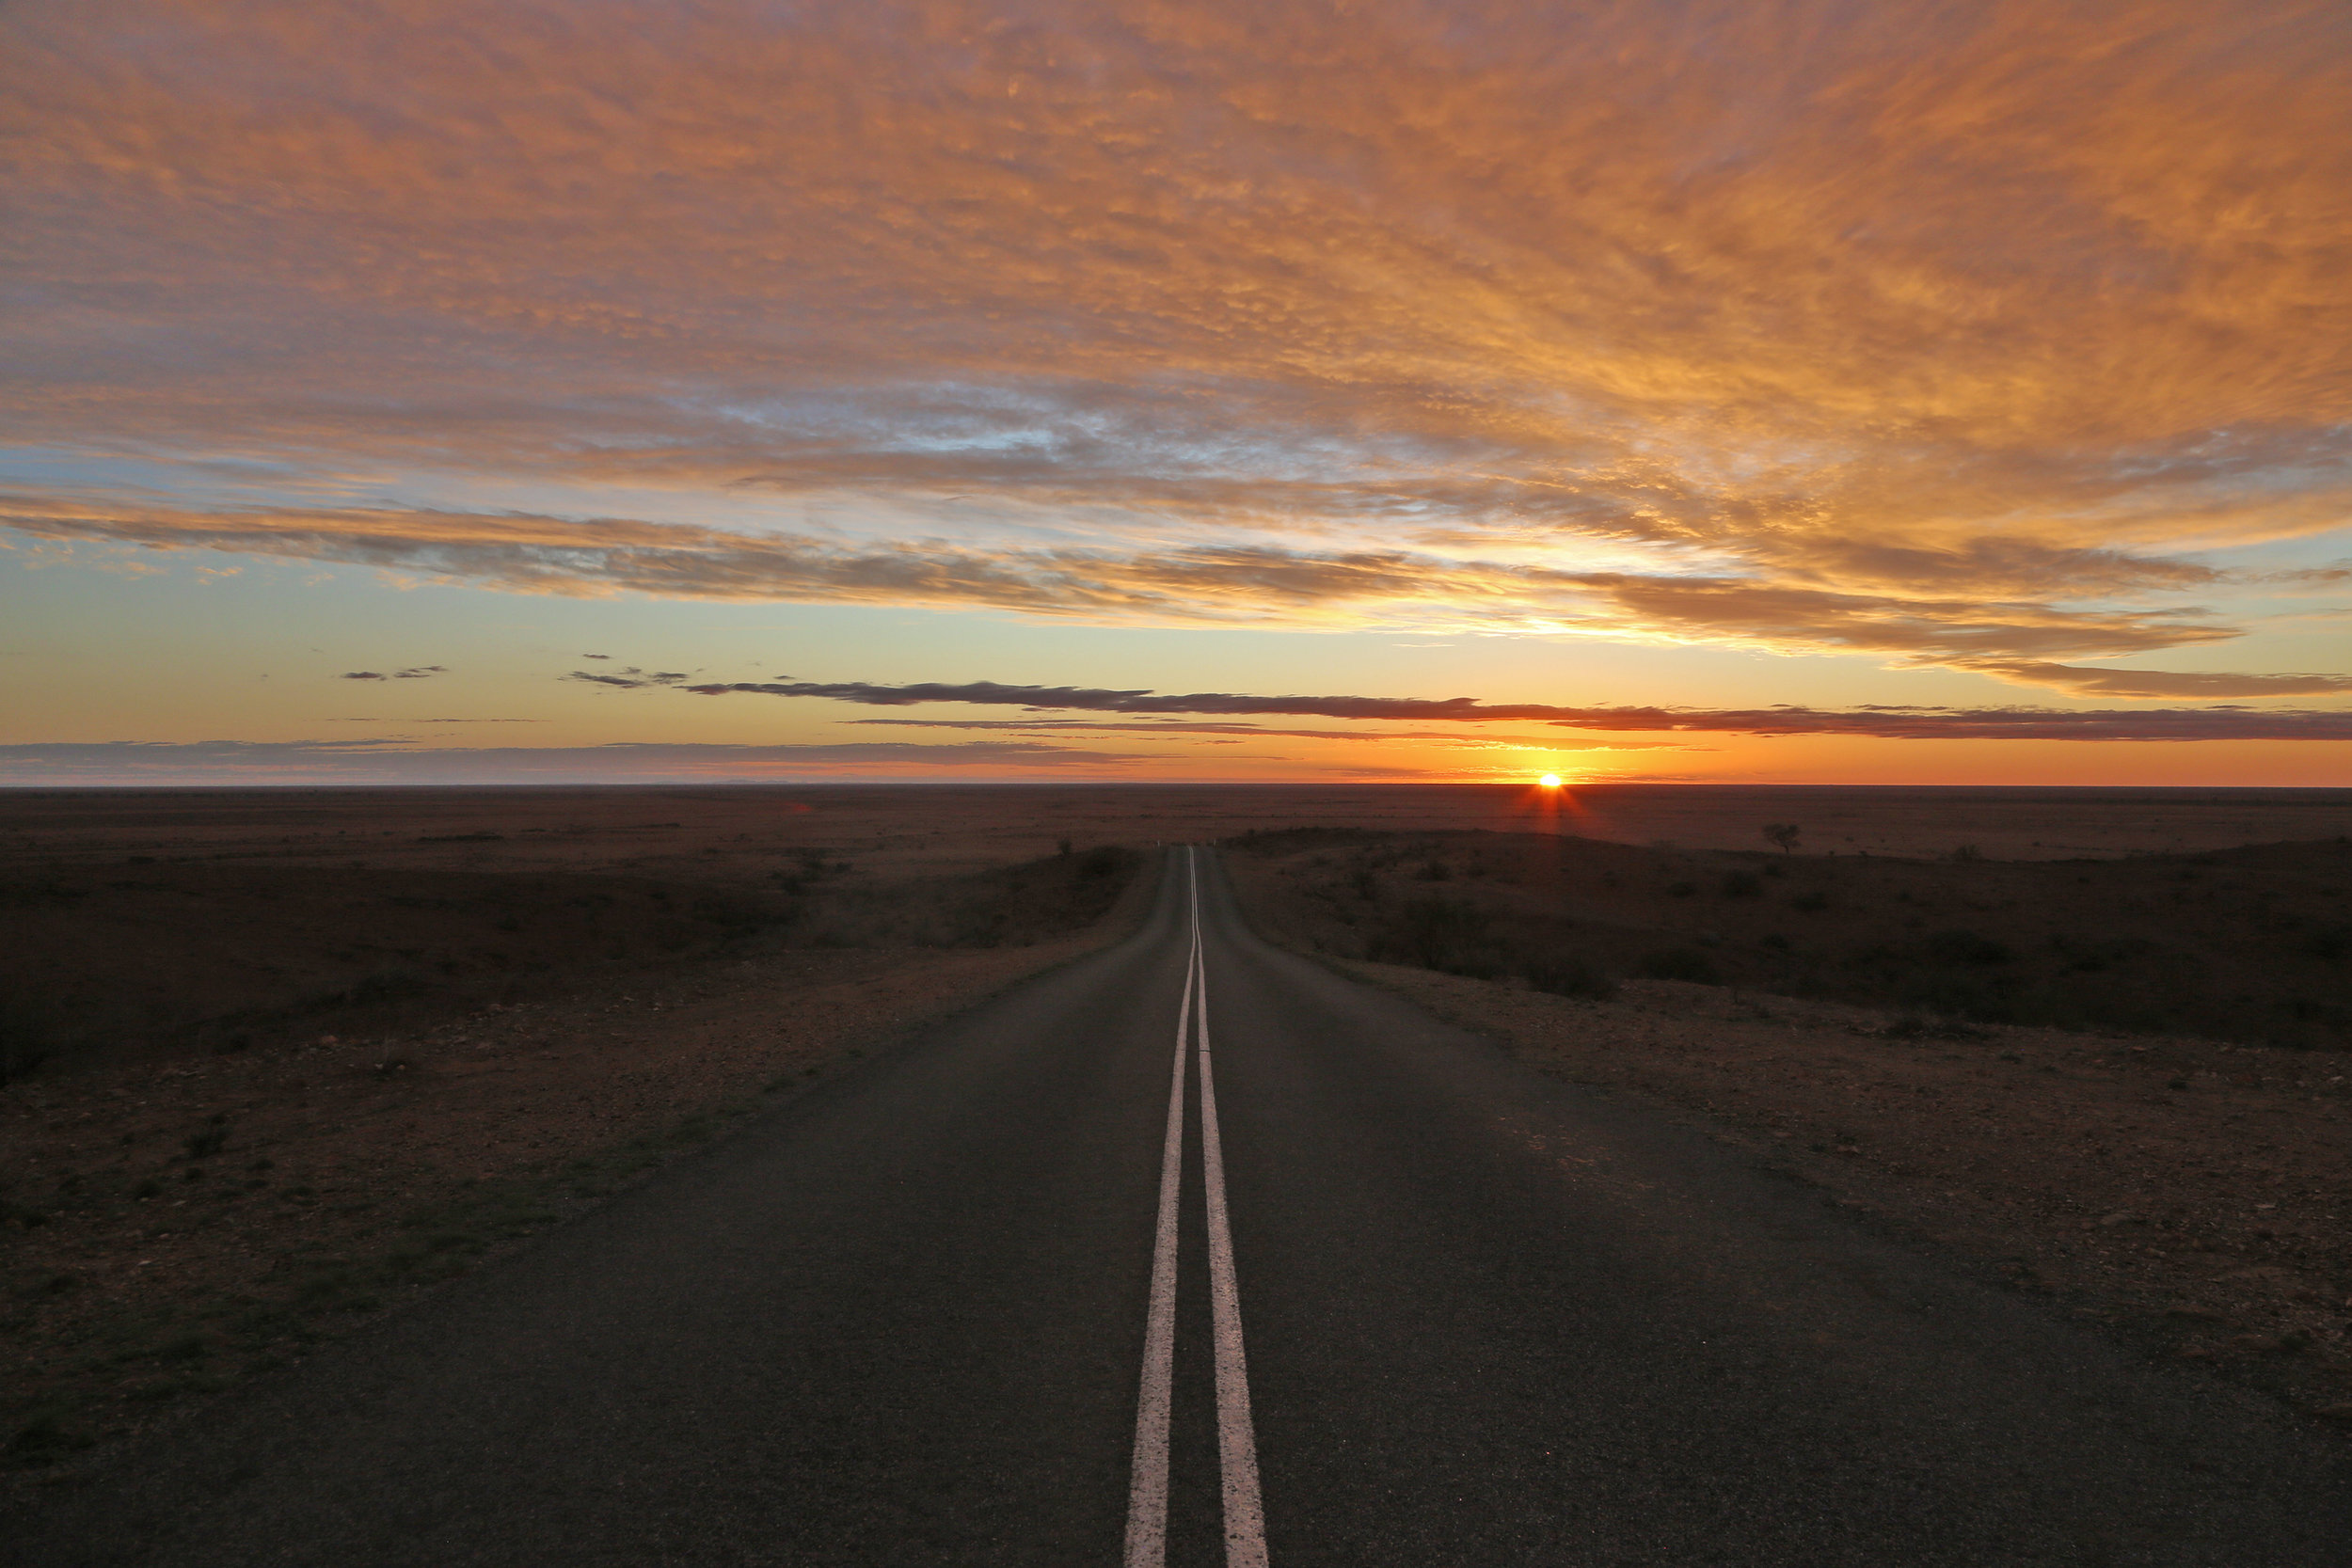 Just a few steps from this road, we get out of the car to watch the sunset over a far-flung horizon.